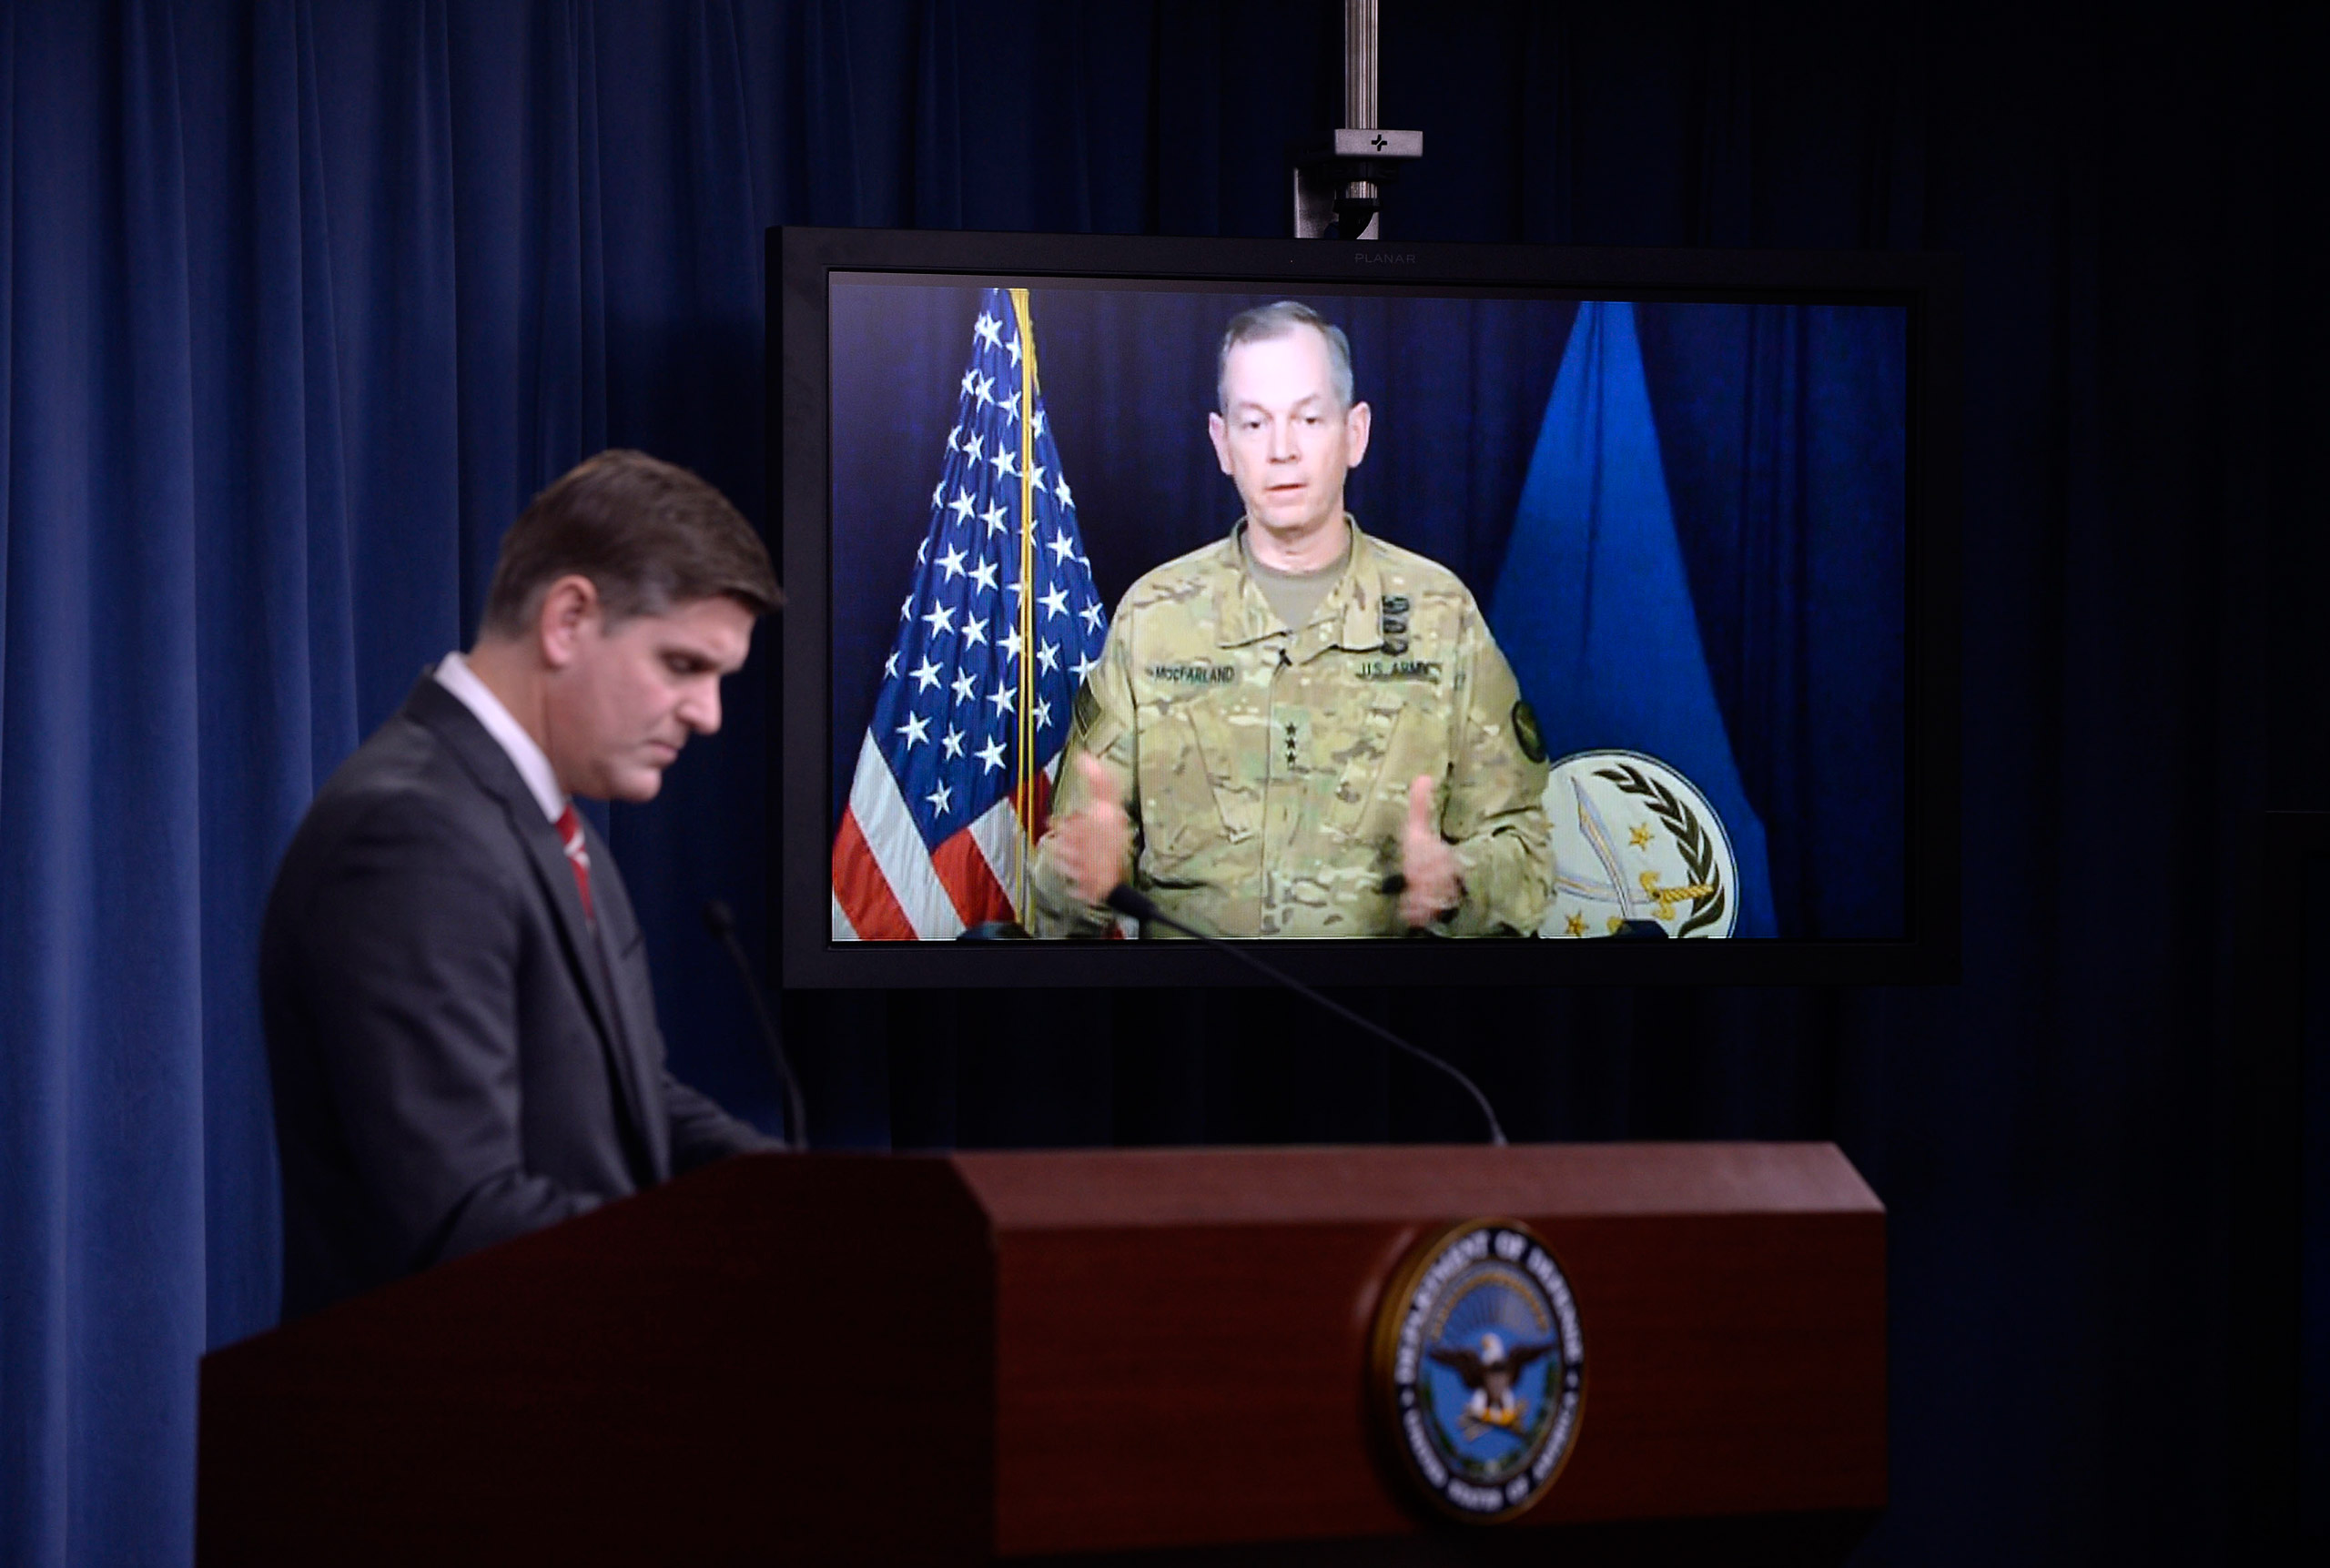 Commander Army Lt. Gen. Sean MacFarland speaks via teleconference from Baghdad, Iraq as Pentagon Press Secretary Peter Cook listens during a media briefing at the Pentagon in Arlington, Va., on Feb. 1, 2016.